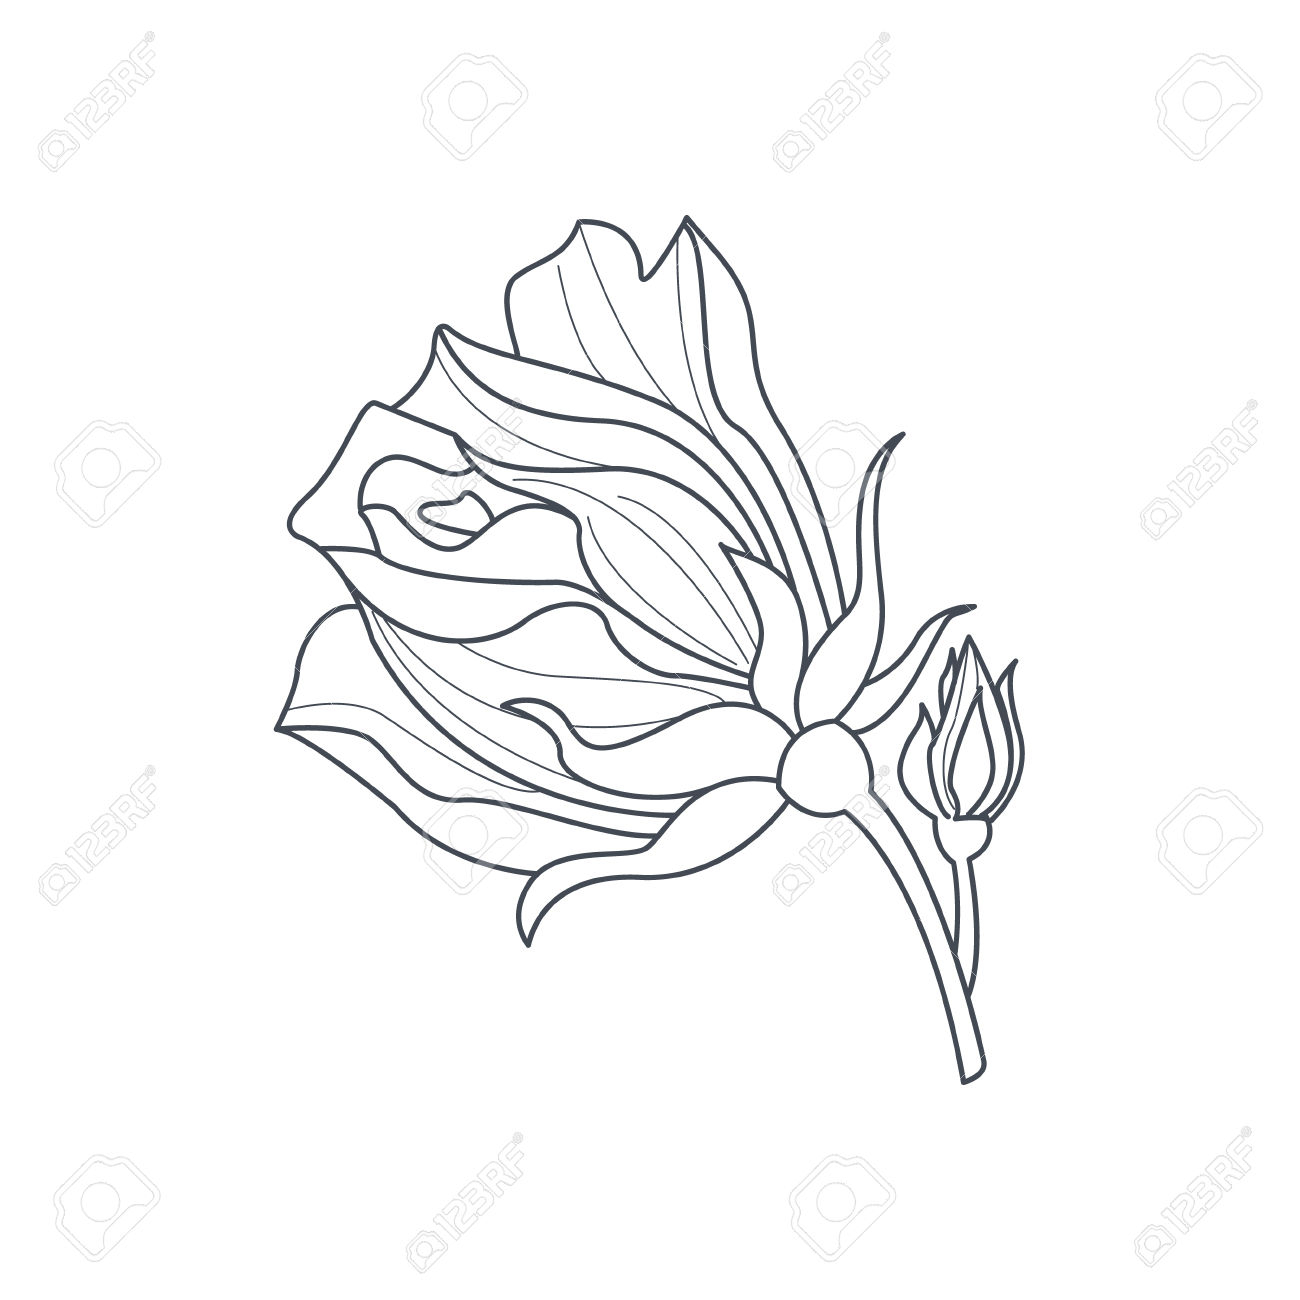 1300x1300 Simple Rose Bud Drawing Rose Bud Monochome Drawing For Coloring